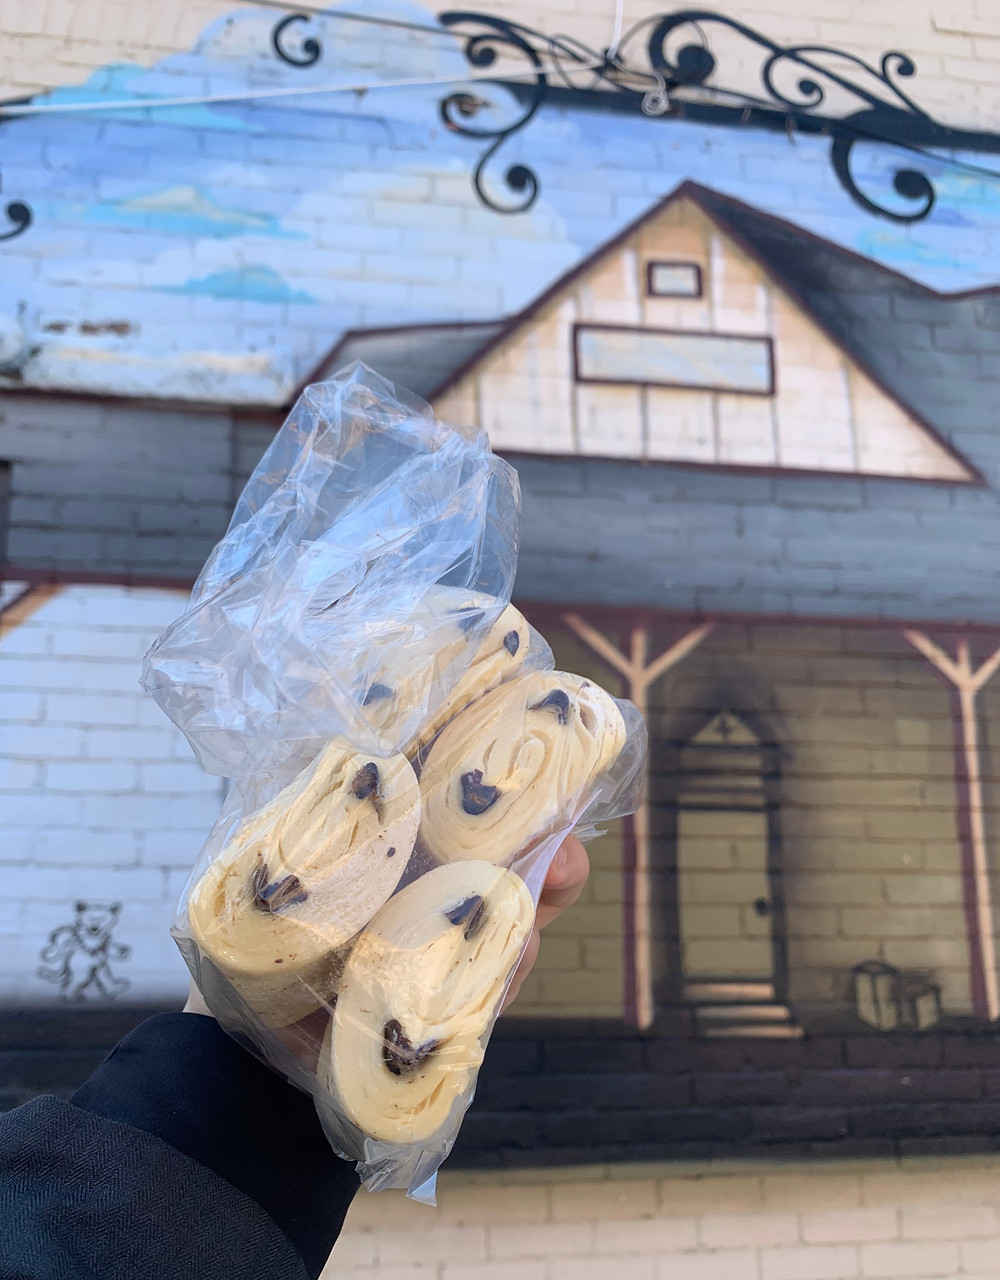 bag of French frozen croissants on sale & Junction mural